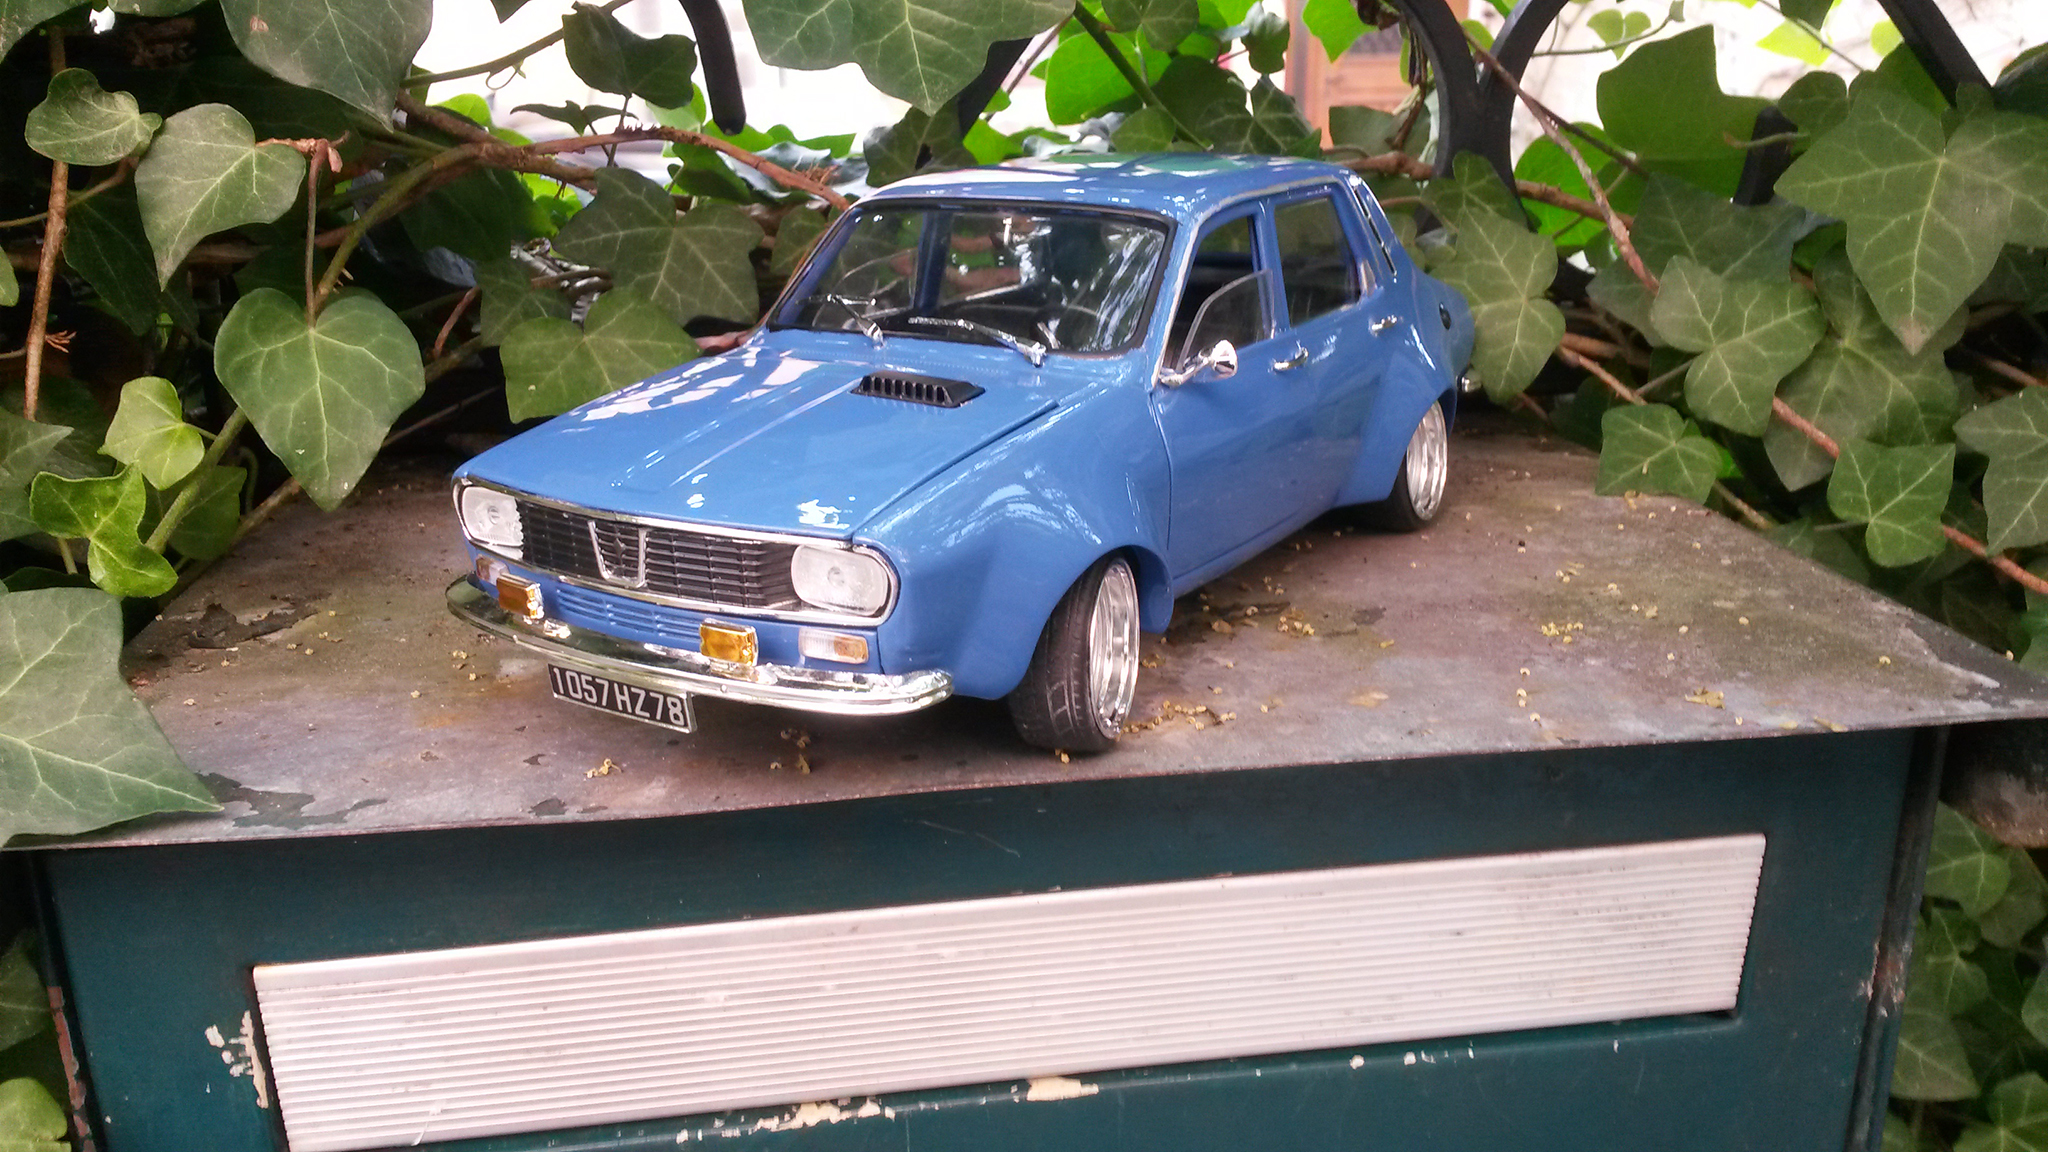 Renault 12 Gordini kit large groupe A tuning Solido. Renault 12 Gordini kit large groupe A modellauto